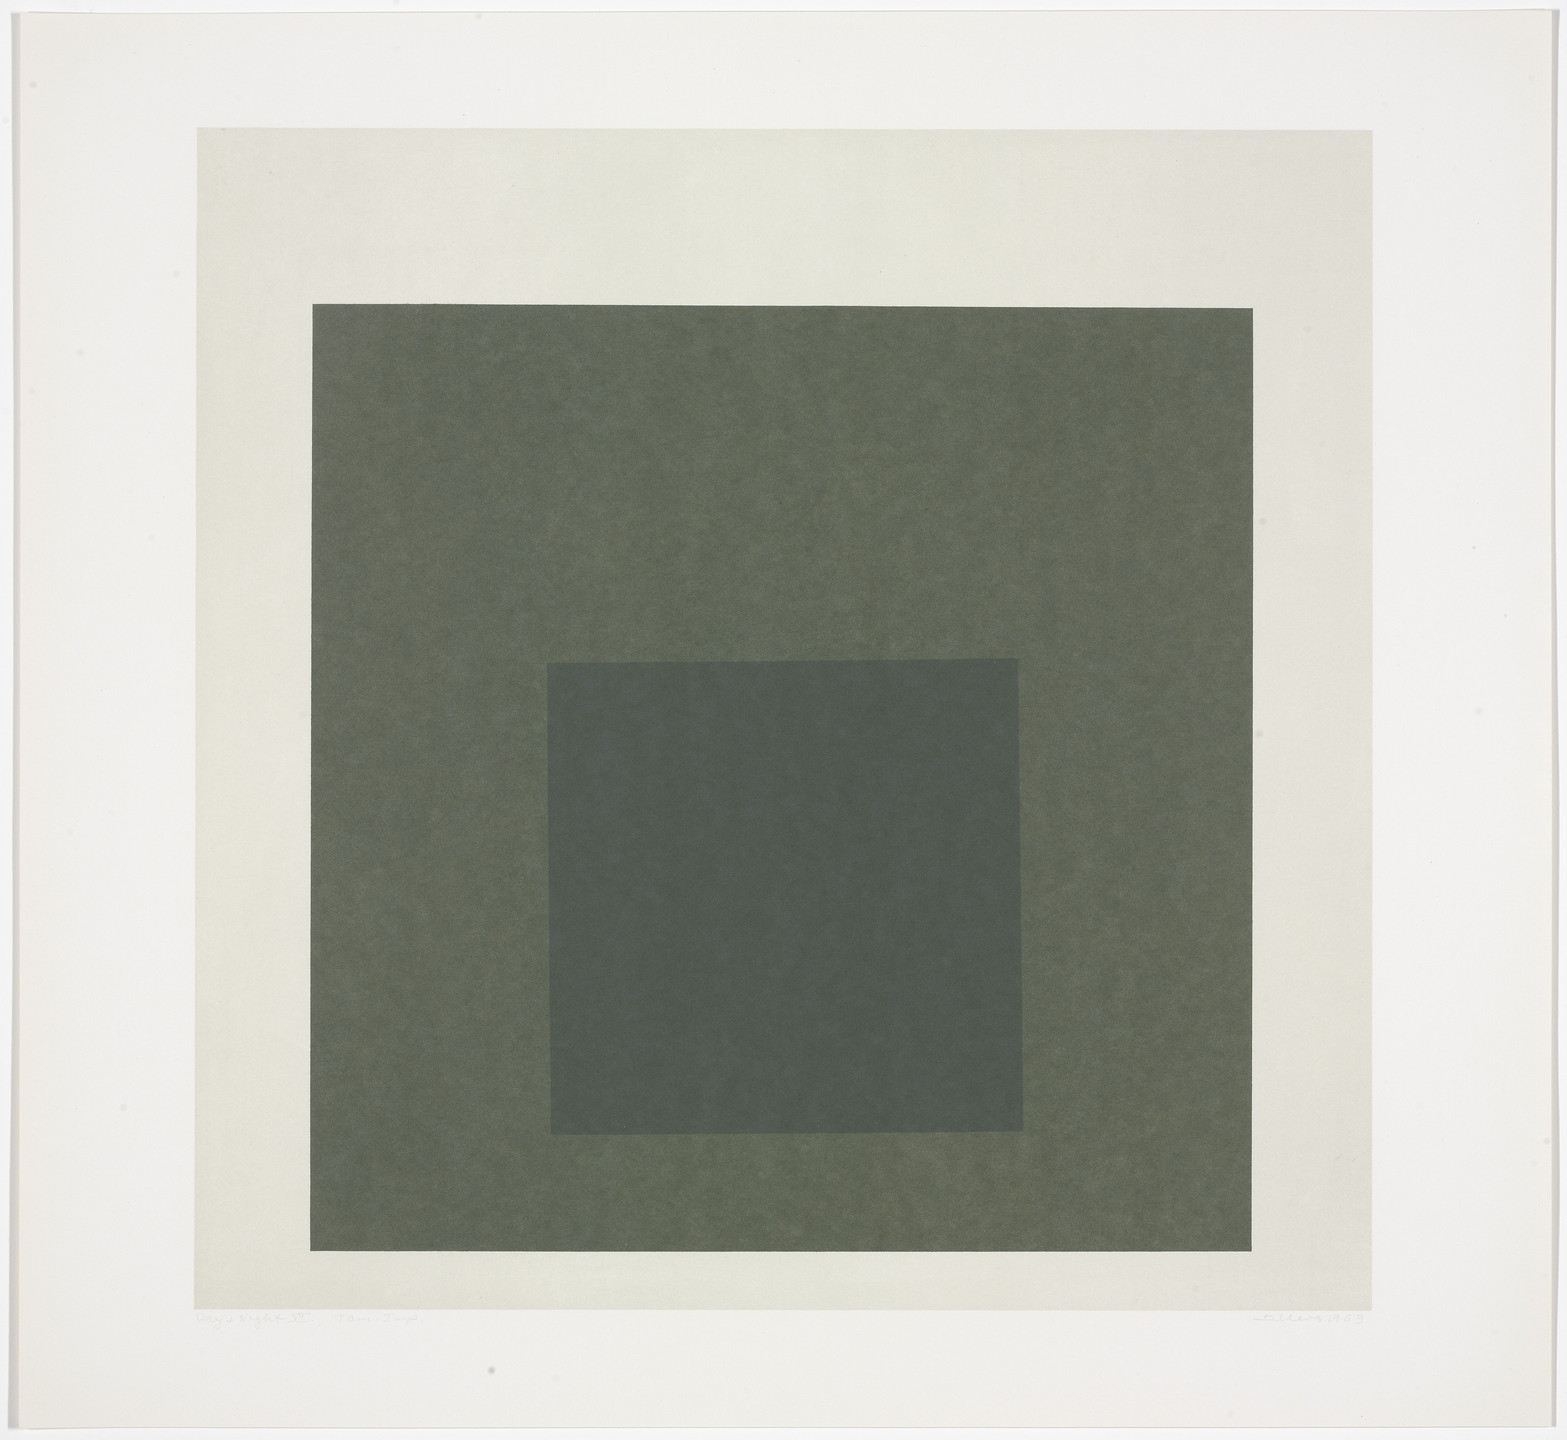 Josef Albers. Day + Night VI from Day and Night: Homage to the Square. 1963